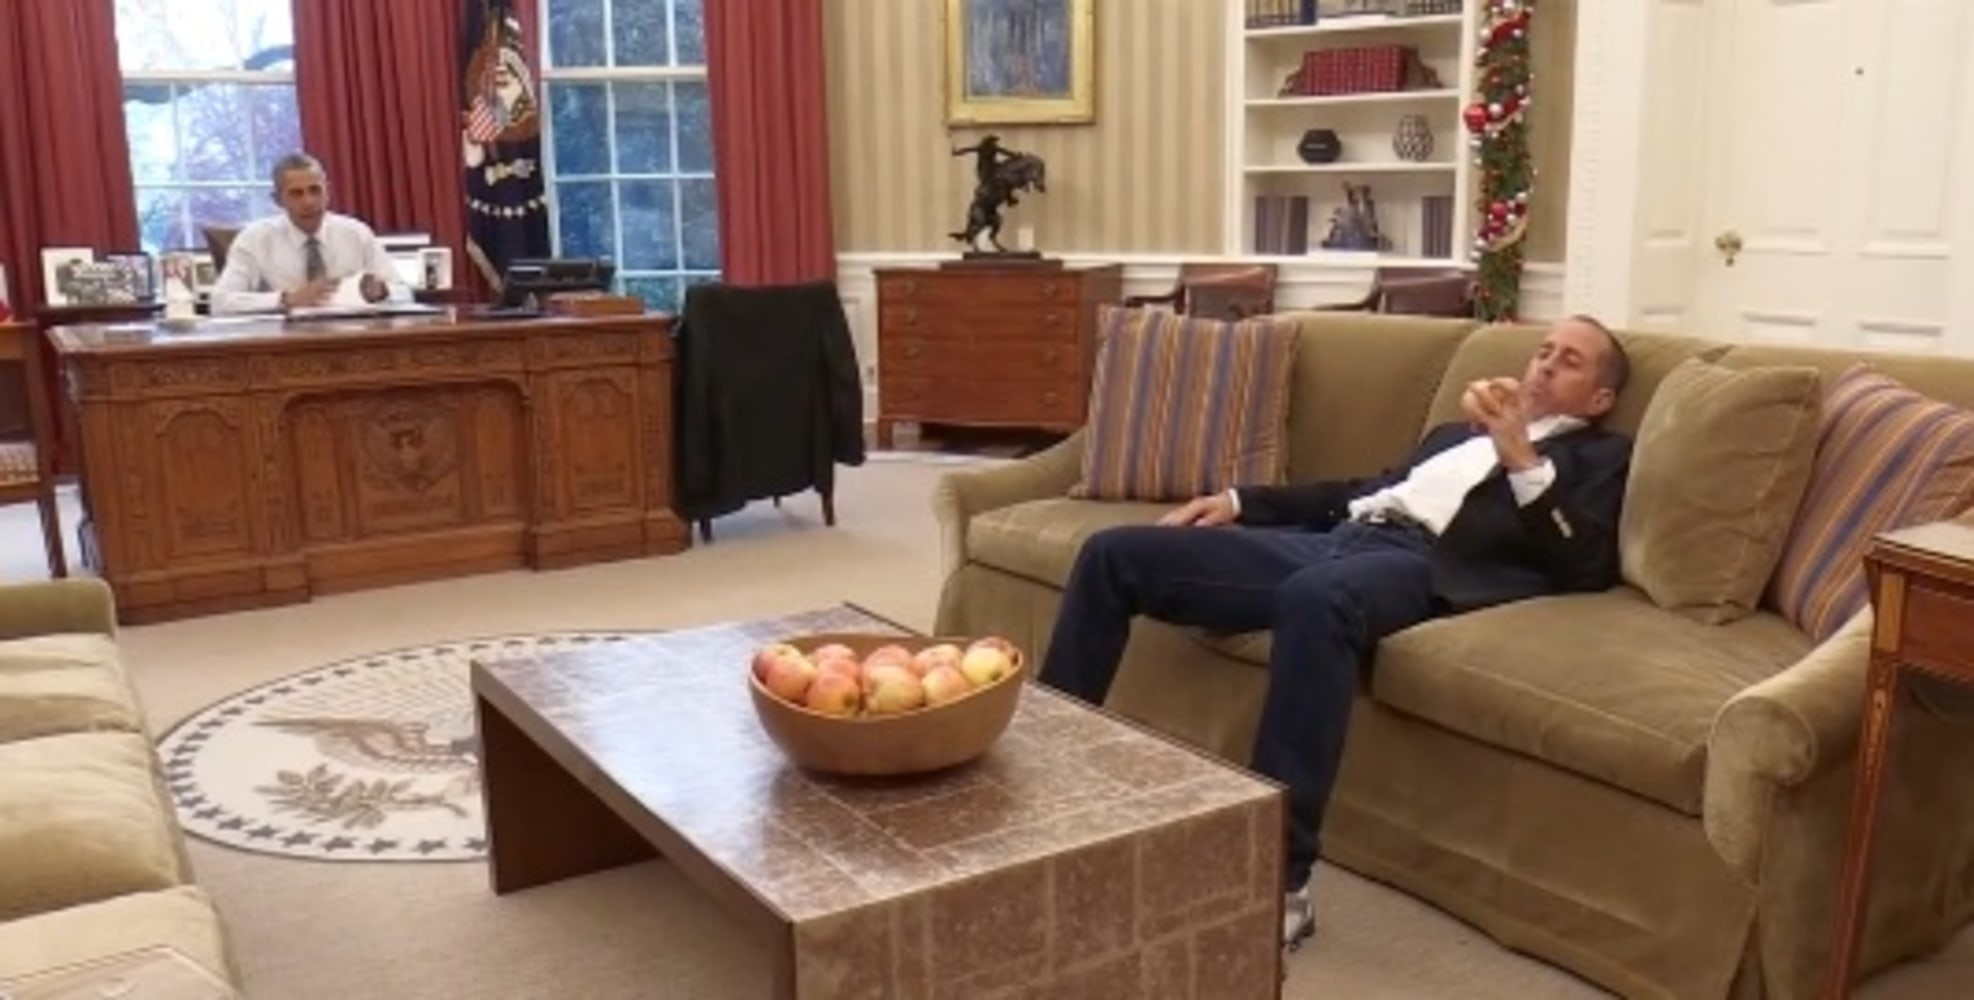 Drives with seinfeld for a coffee at the white house nbc news